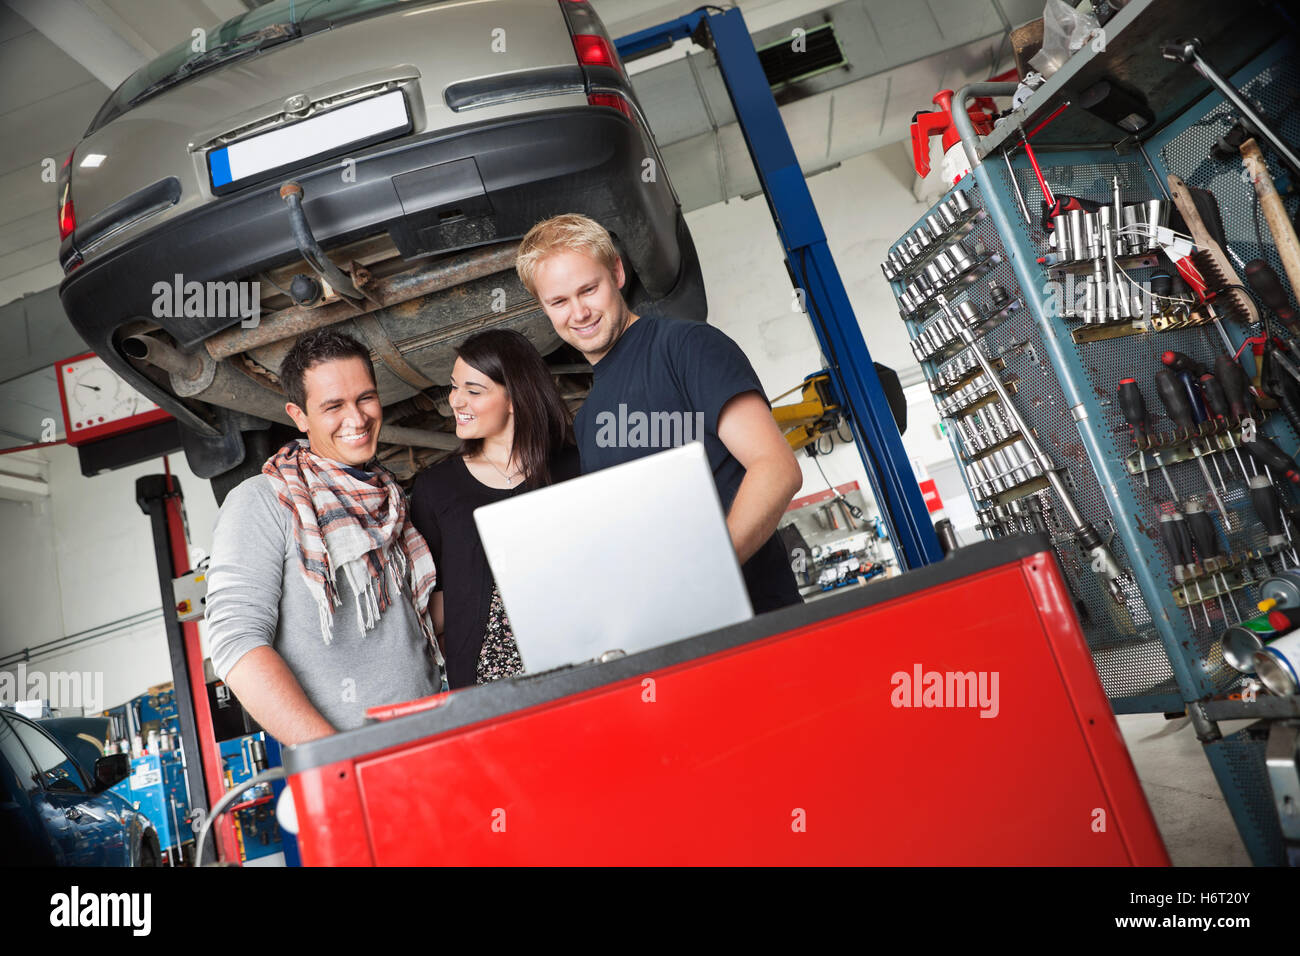 woman railway locomotive train engine rolling stock vehicle means of travel humans human beings people folk persons Stock Photo